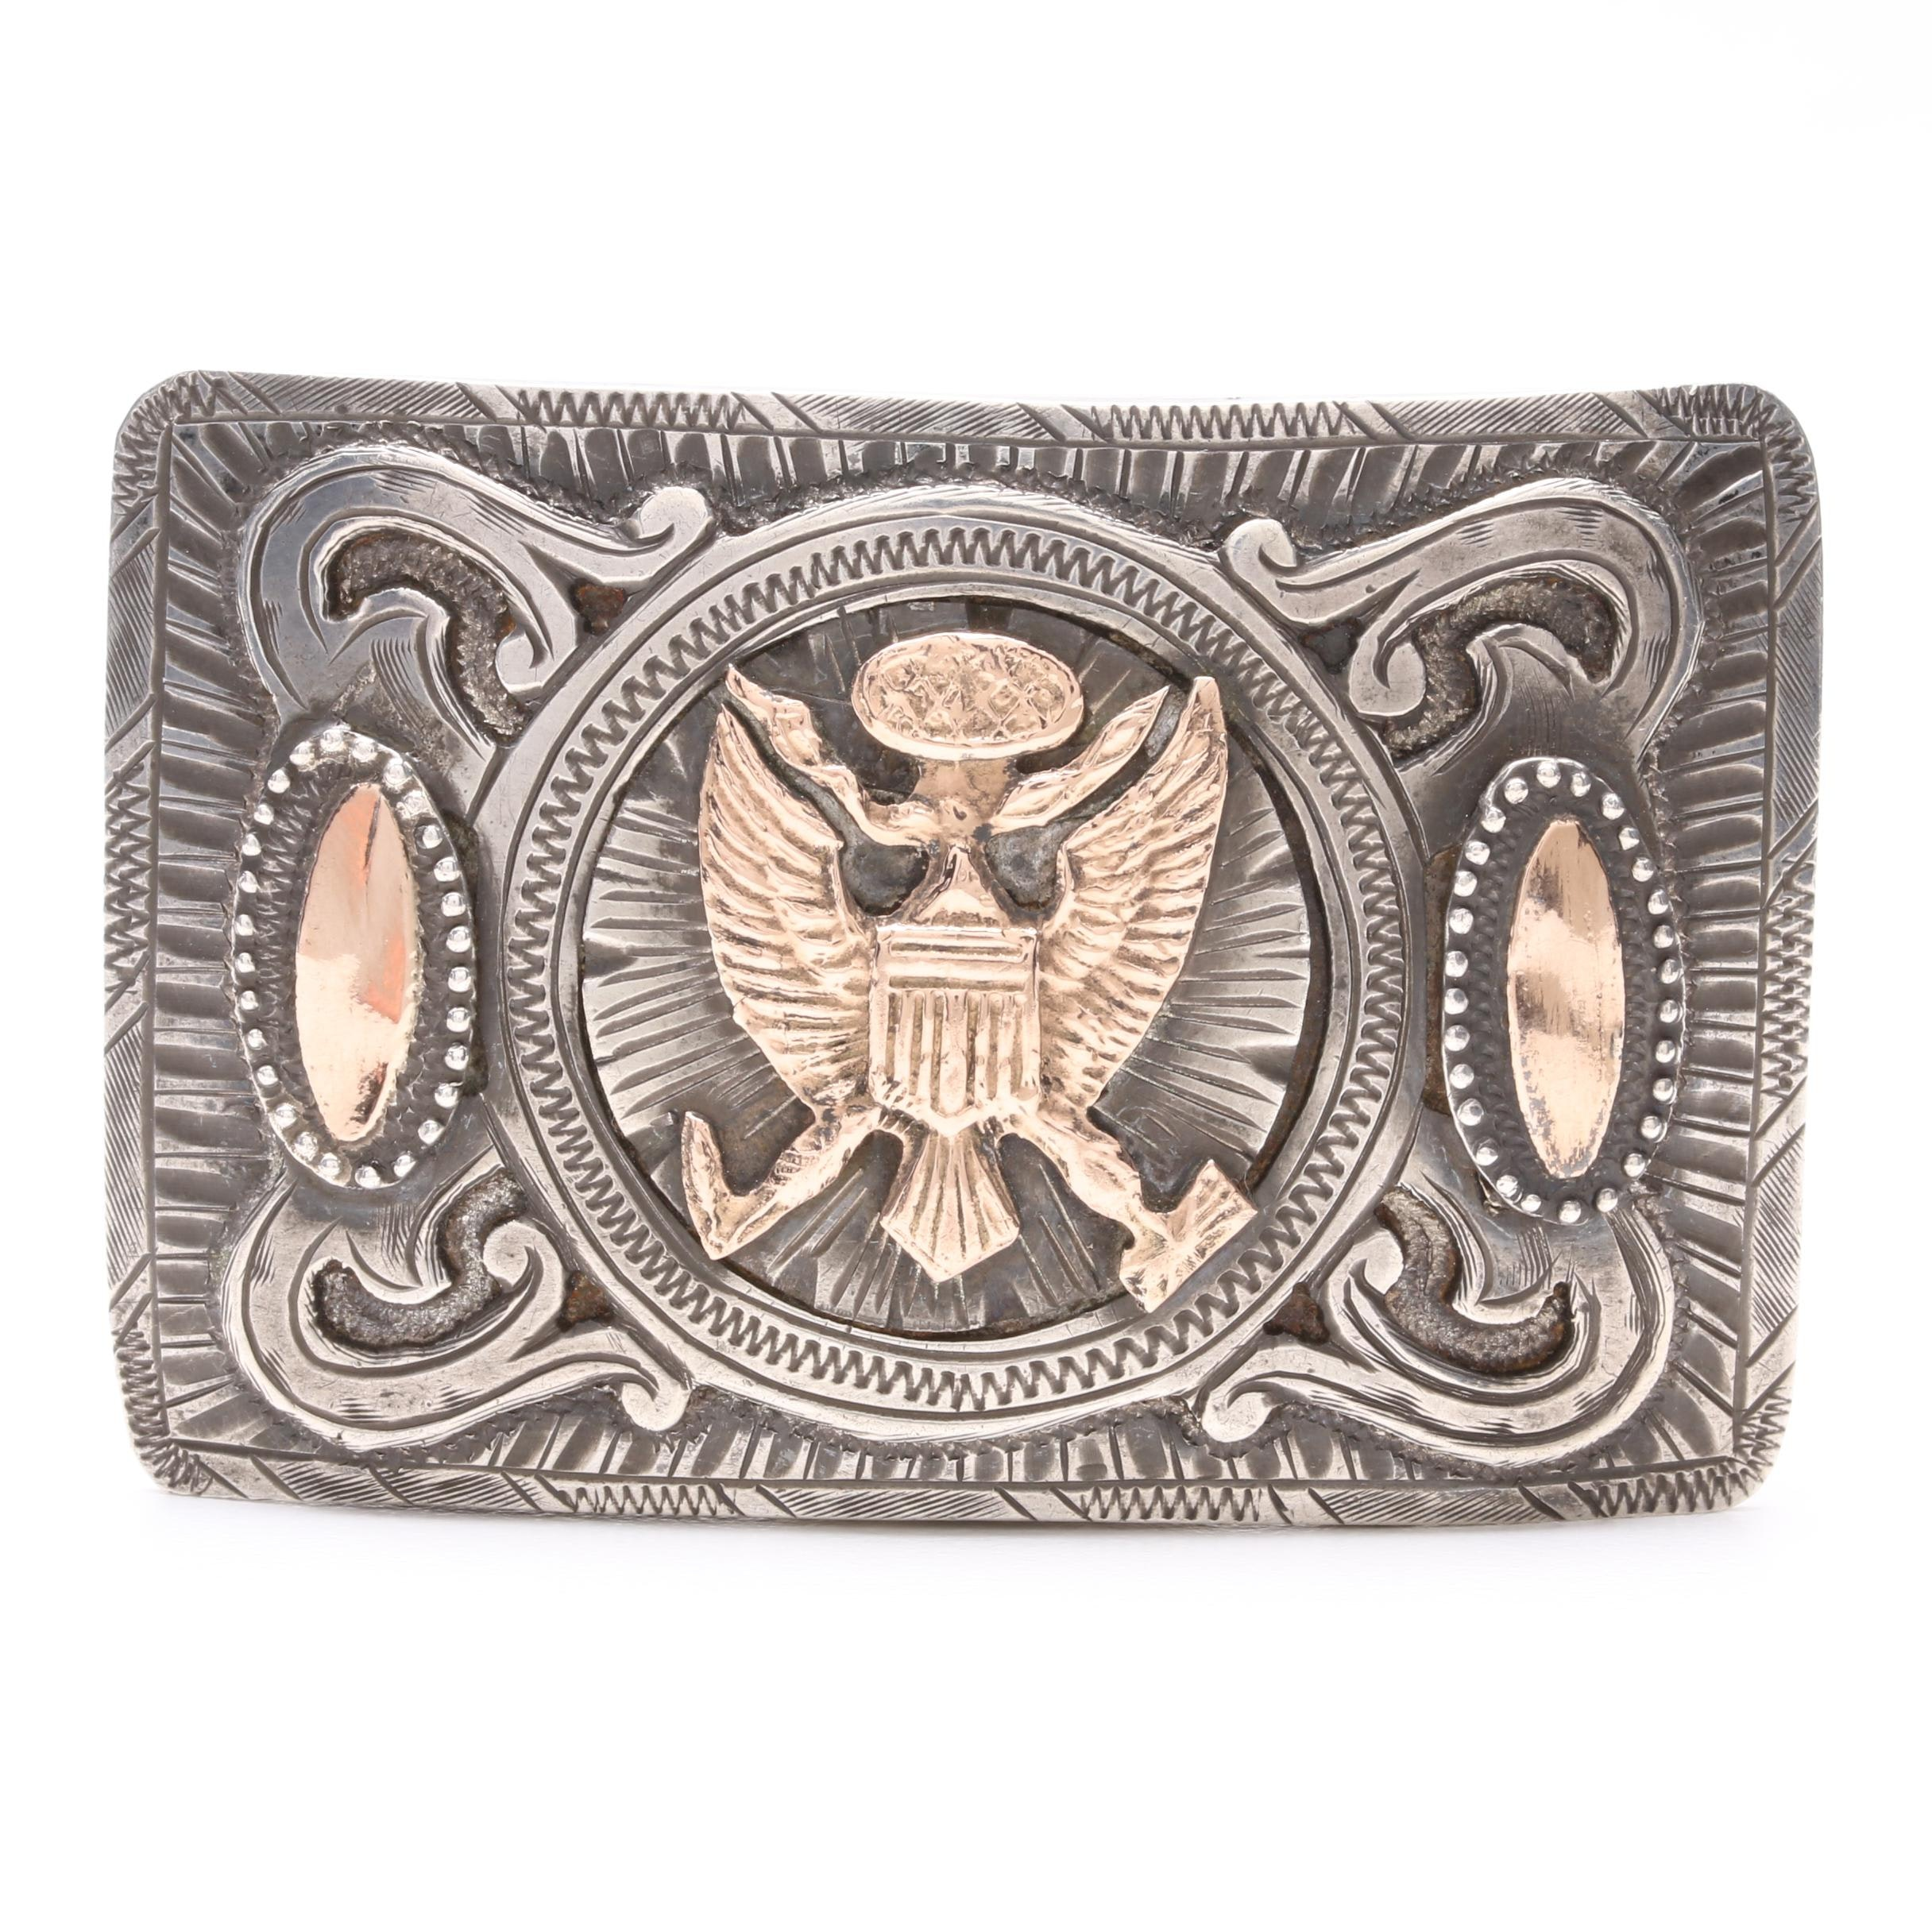 Mexican Made Sterling Silver Belt Buckle with 10K Yellow Gold Accents